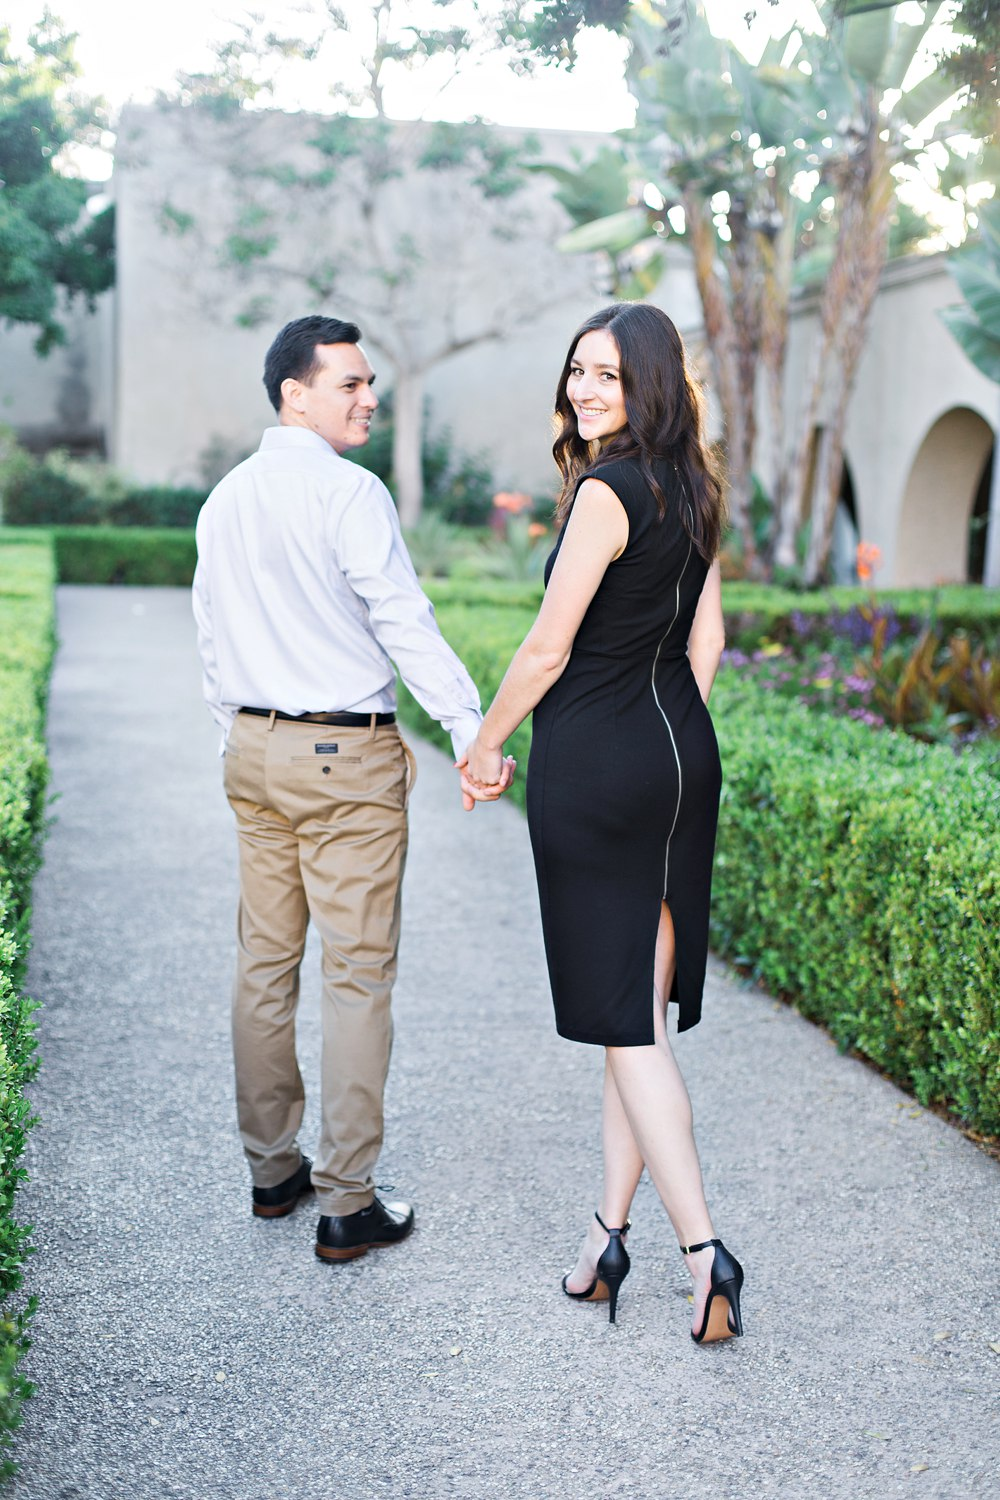 Balboa Park Engagement Session - Kristen and Justin_0014.jpg